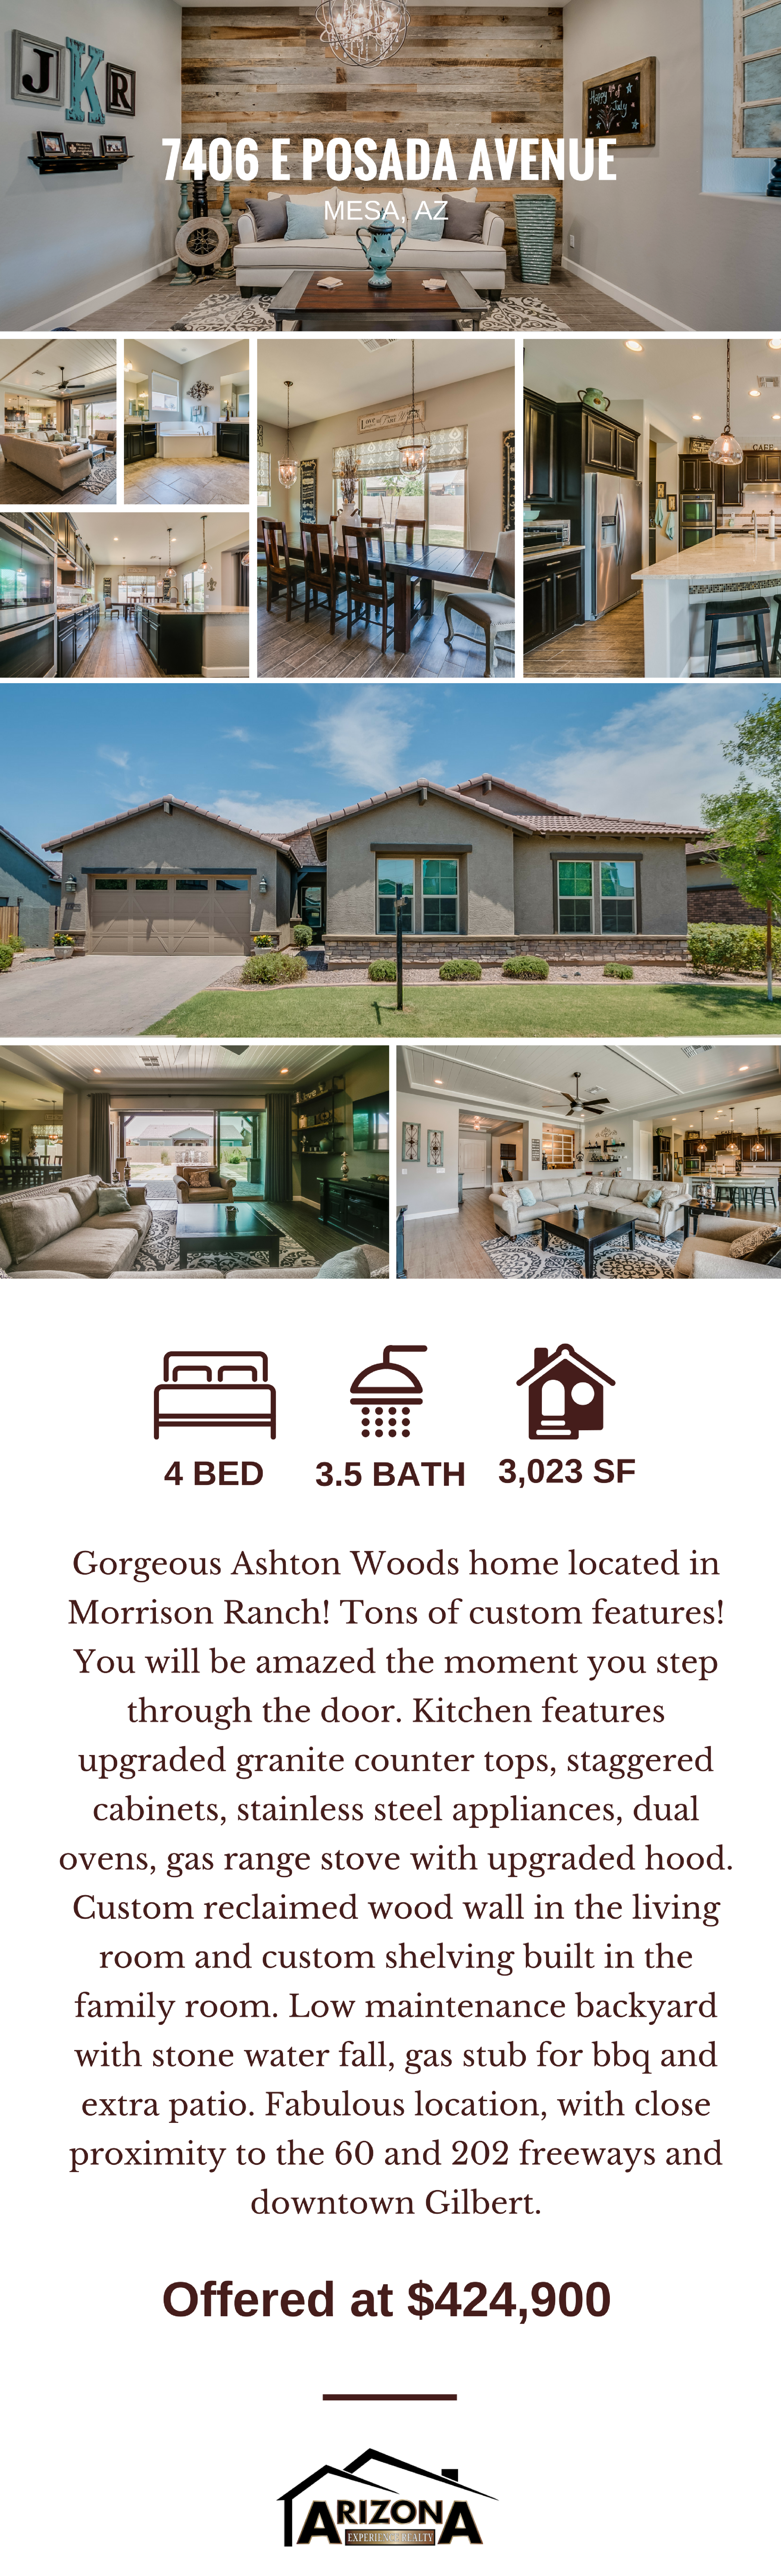 Pending Sale | Gorgeous Ashton Woods home located in Morrison Ranch ...